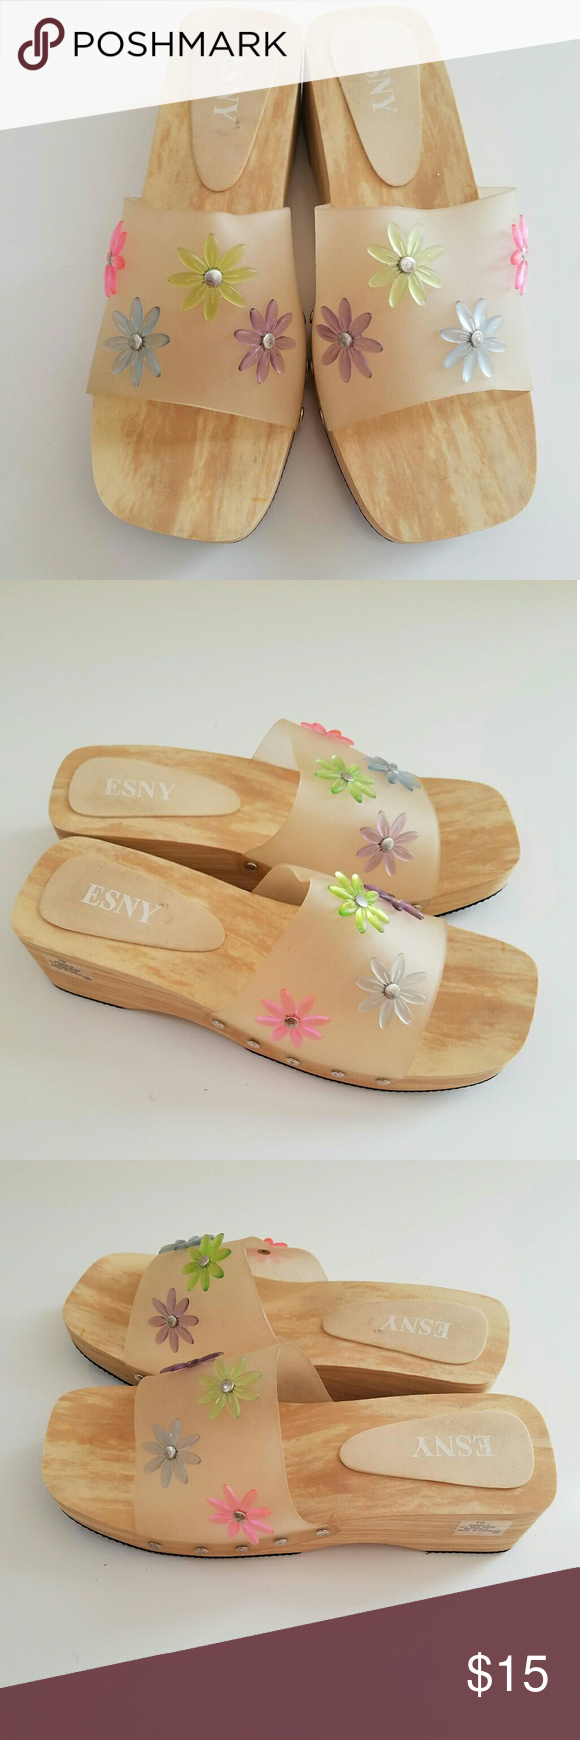 841a345afad04 ESNY Flower Clog Platform Beach Slides Shoes ESNY Women s NEW Flower Clog  Platform Casual Summer Beach